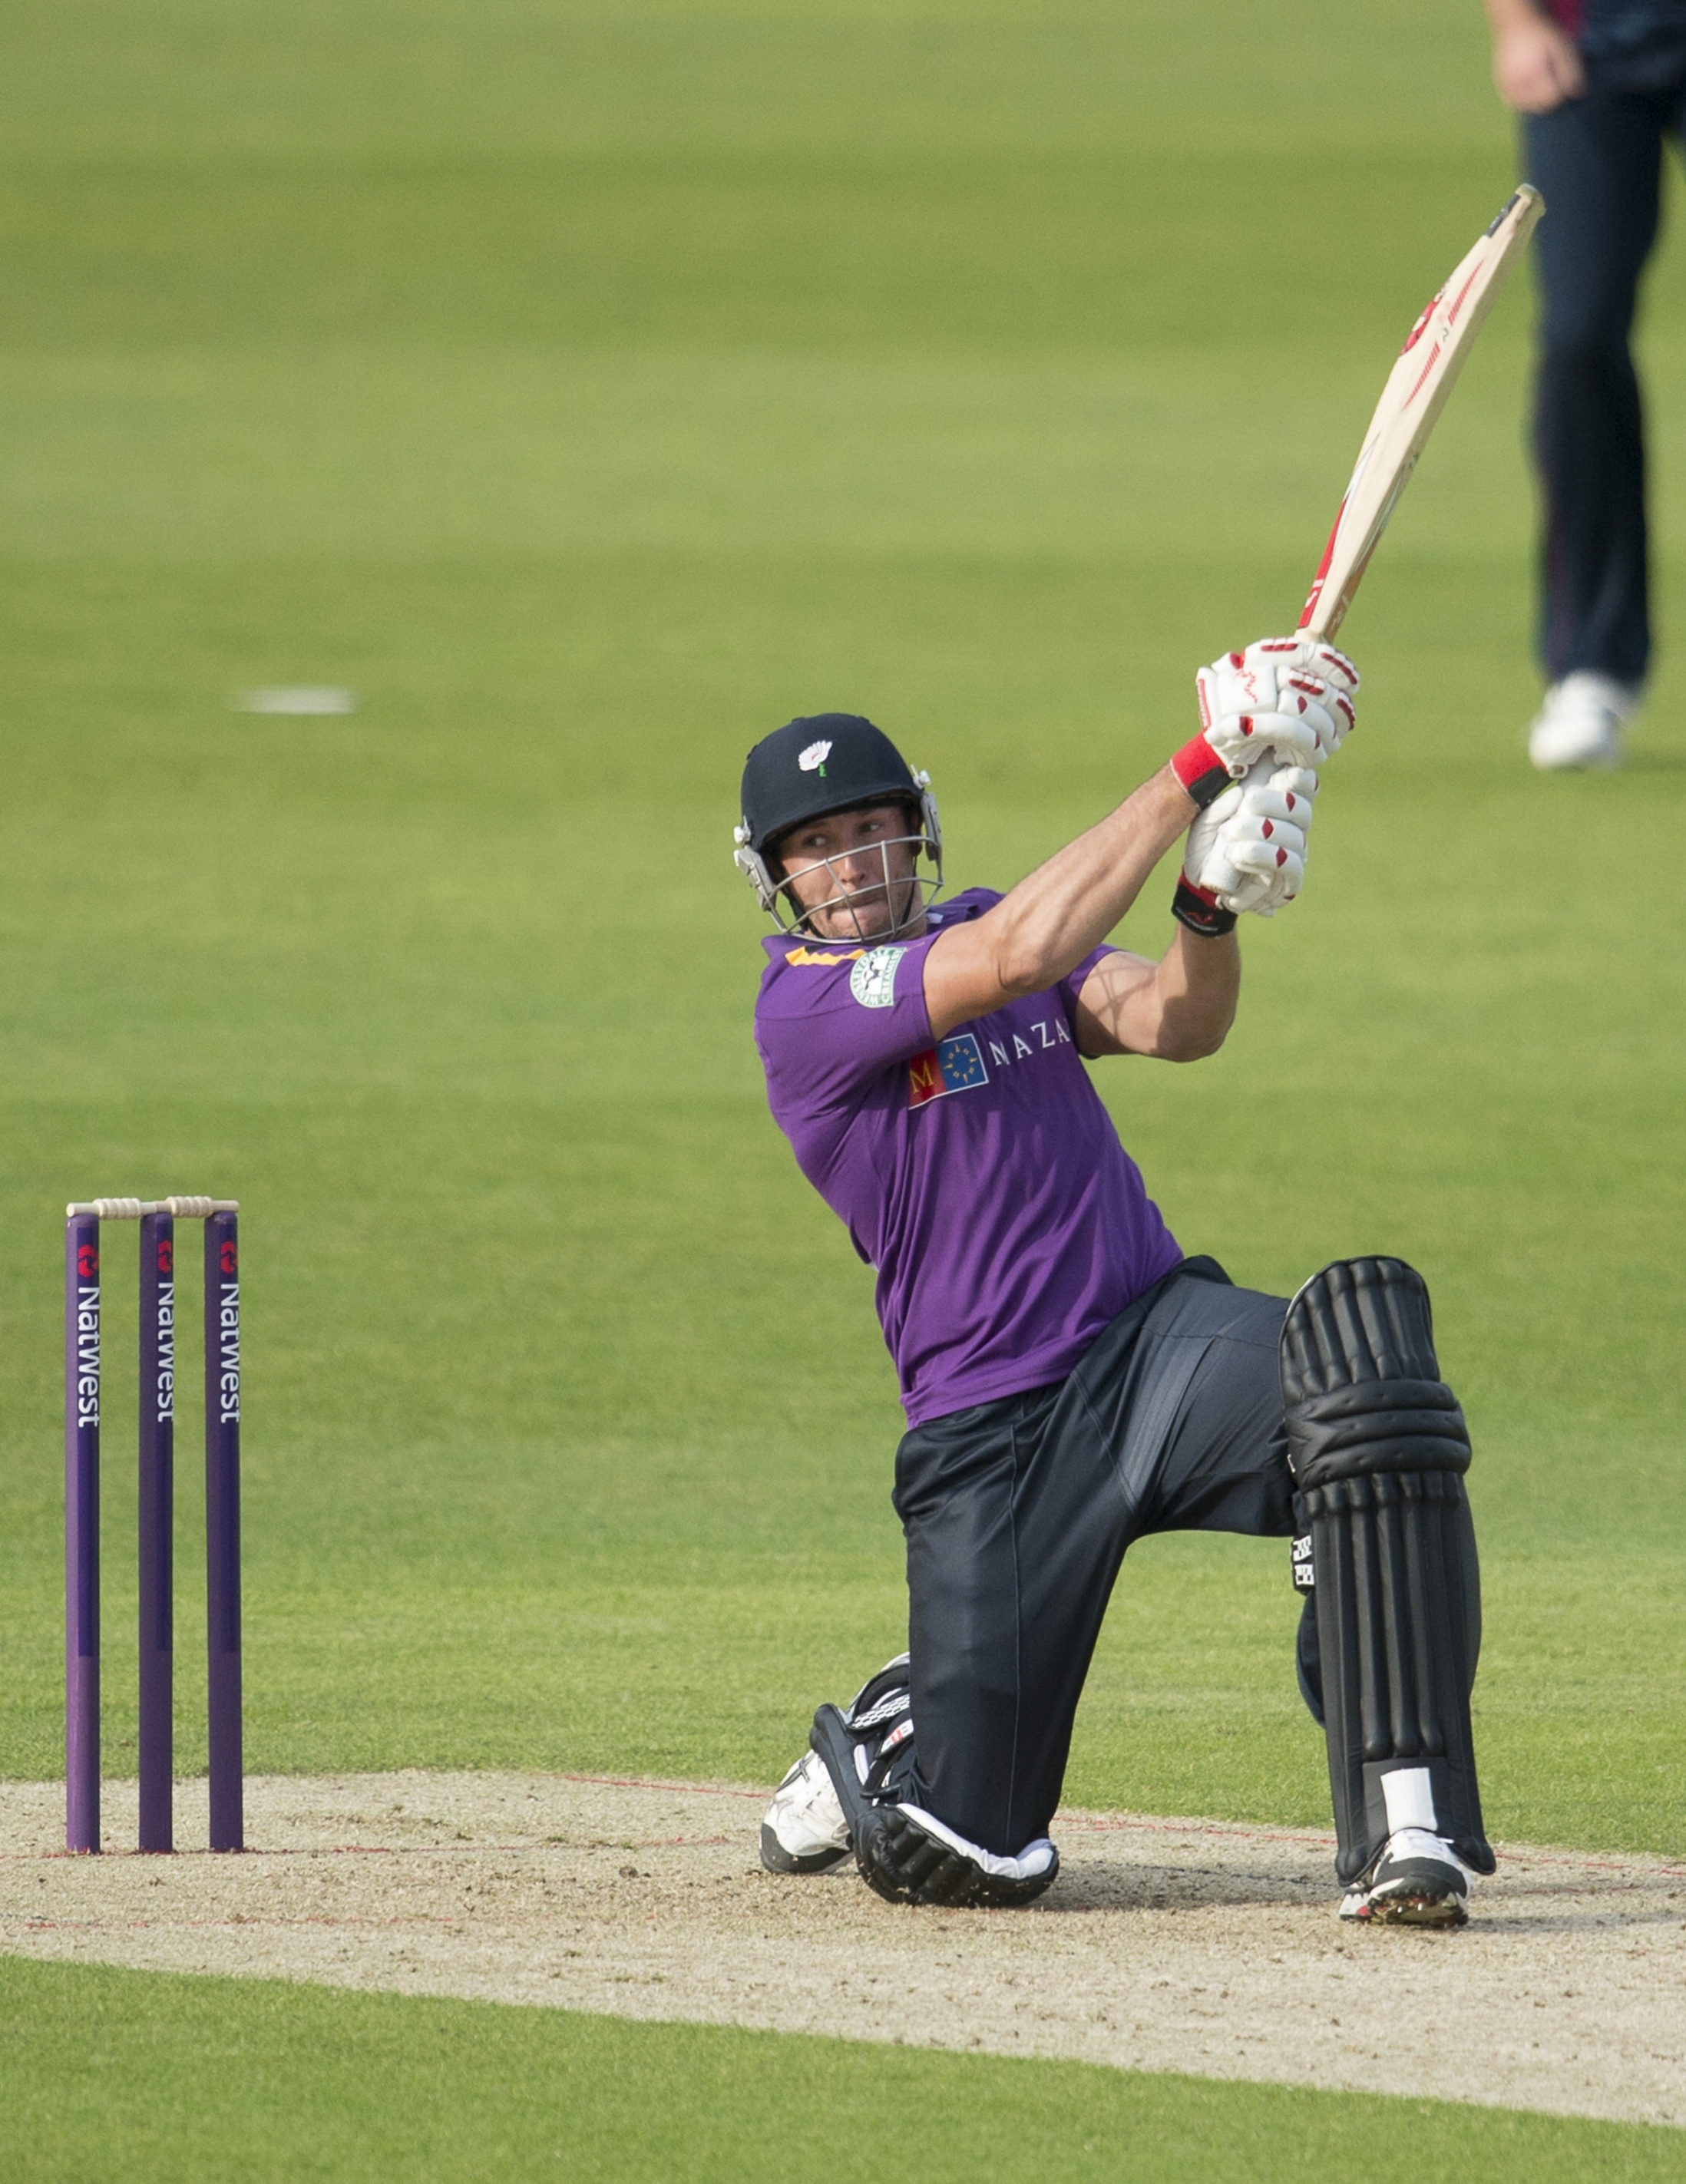 Yorkshire Vikings' Tim Bresnan hits out in his knock of 34 not out against Northamptonshire in the NatWest T20 Blast